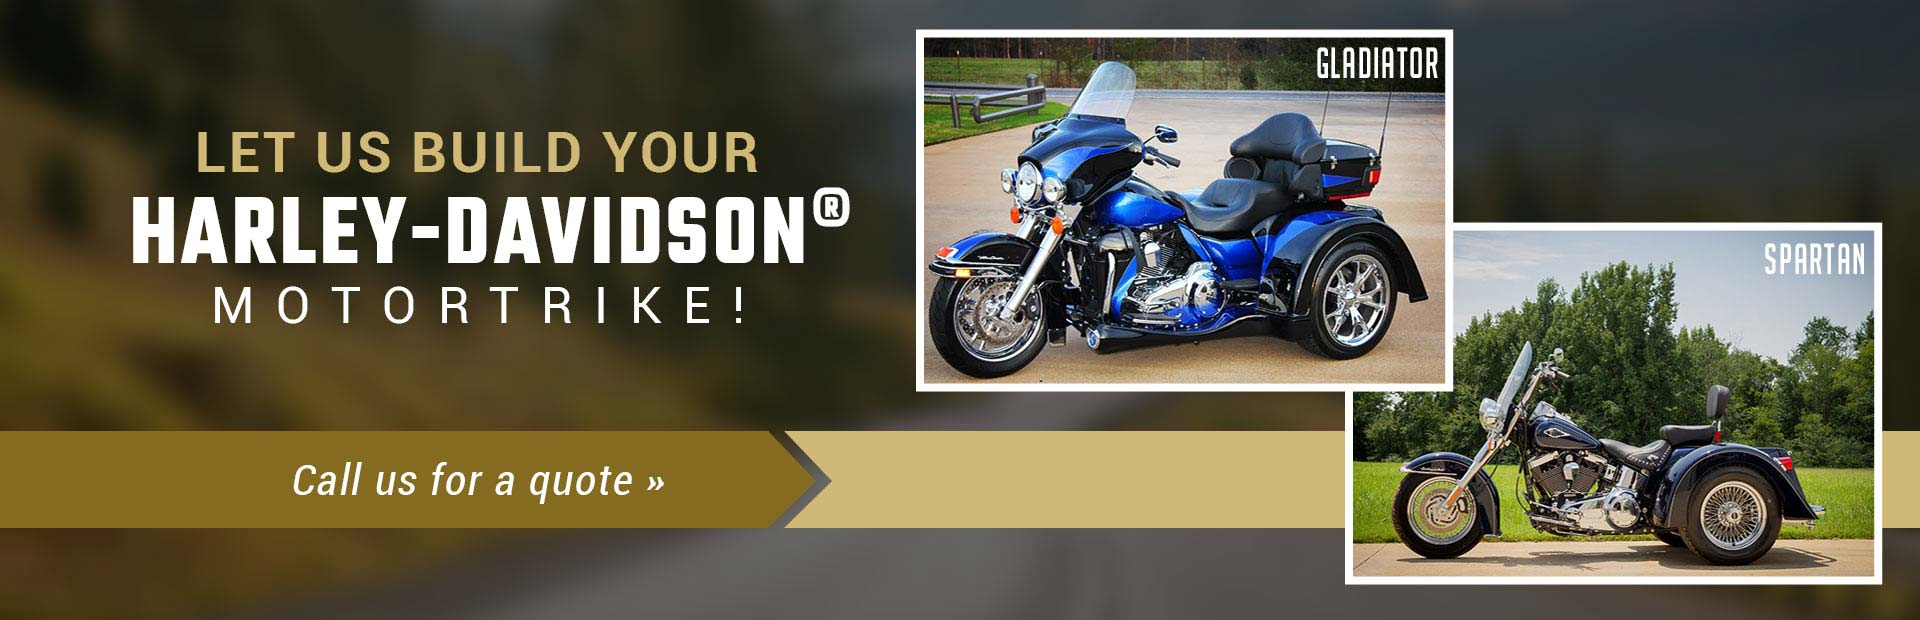 Let us build your Harley-Davidson® motortrike! Call (812) 482-3366 for a quote.